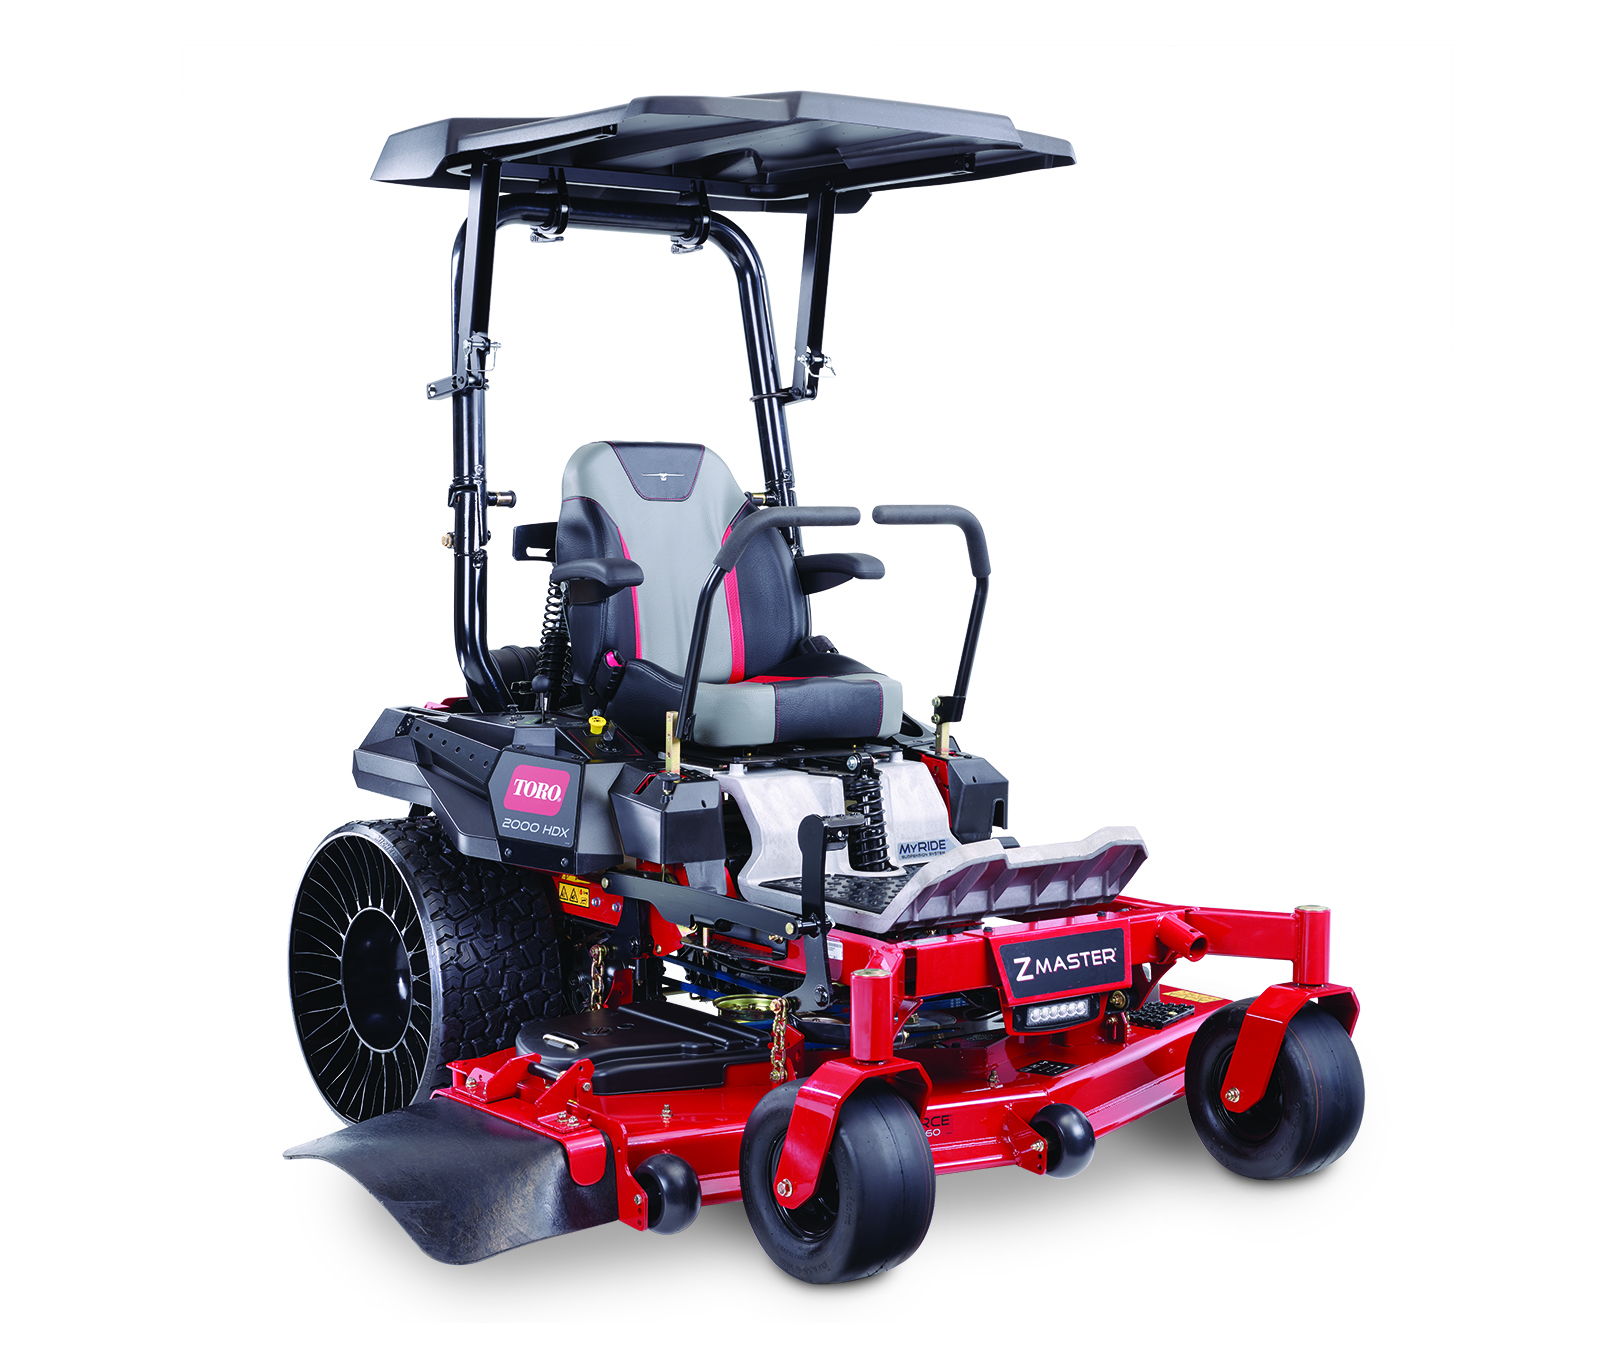 Commercial Mowers Zero Turn Stand On Walk Behind Lawn Mowers Toro